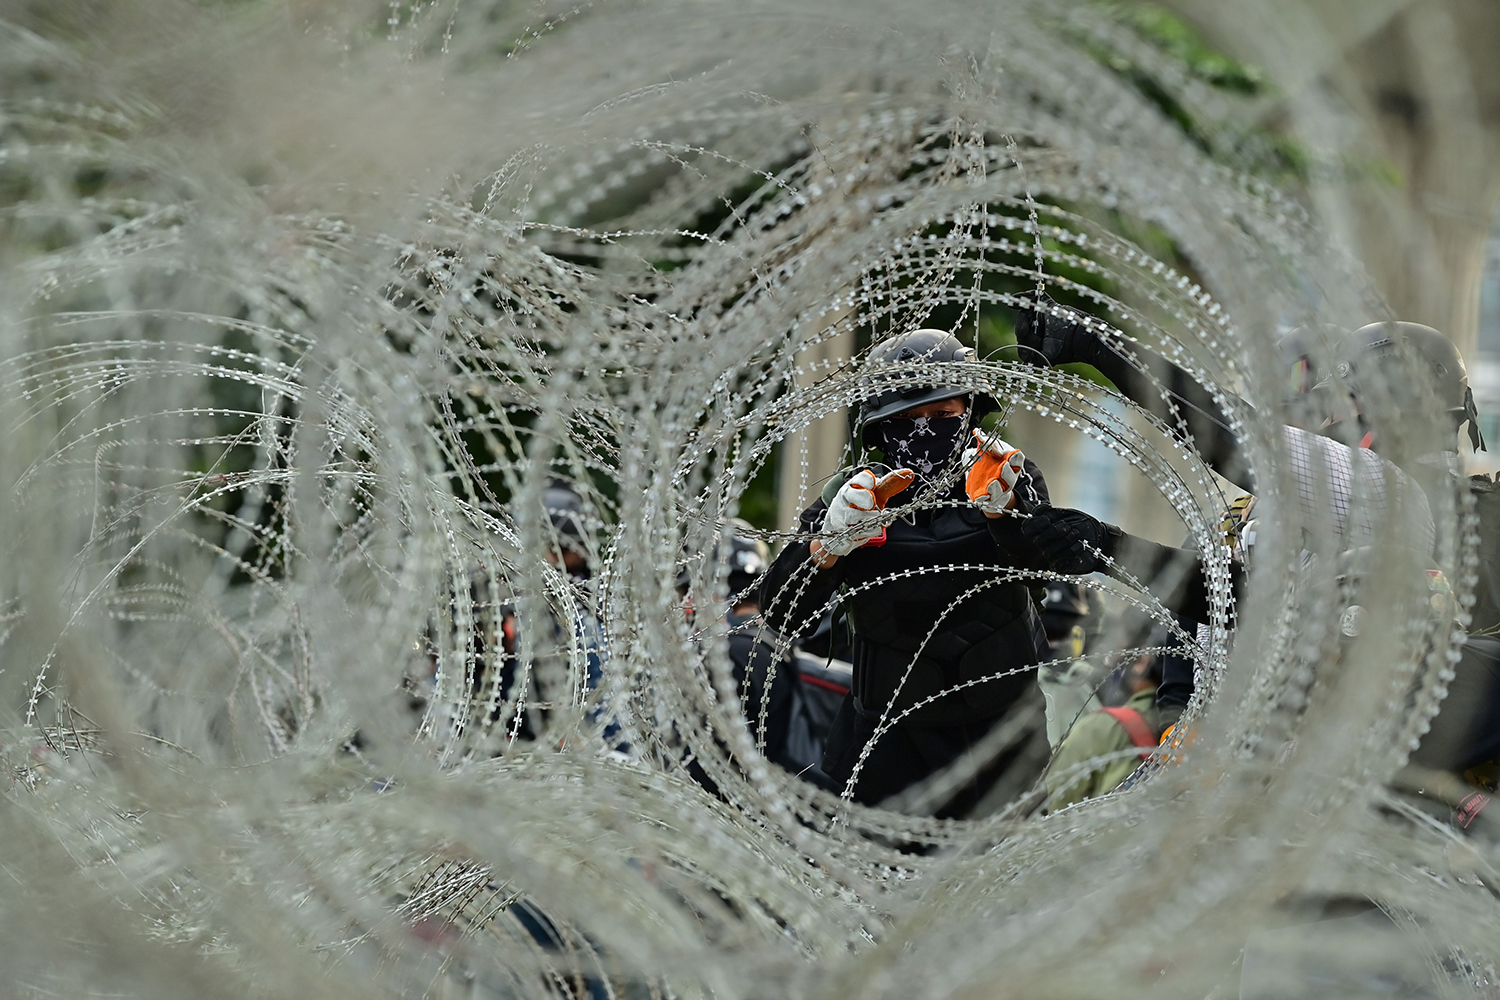 A protester attempts to remove barbed wire—installed as a protective measure outside the 11th Infantry Regiment—during an anti-government rally in Bangkok on Nov. 29. LILLIAN SUWANRUMPHA/AFP via Getty Images